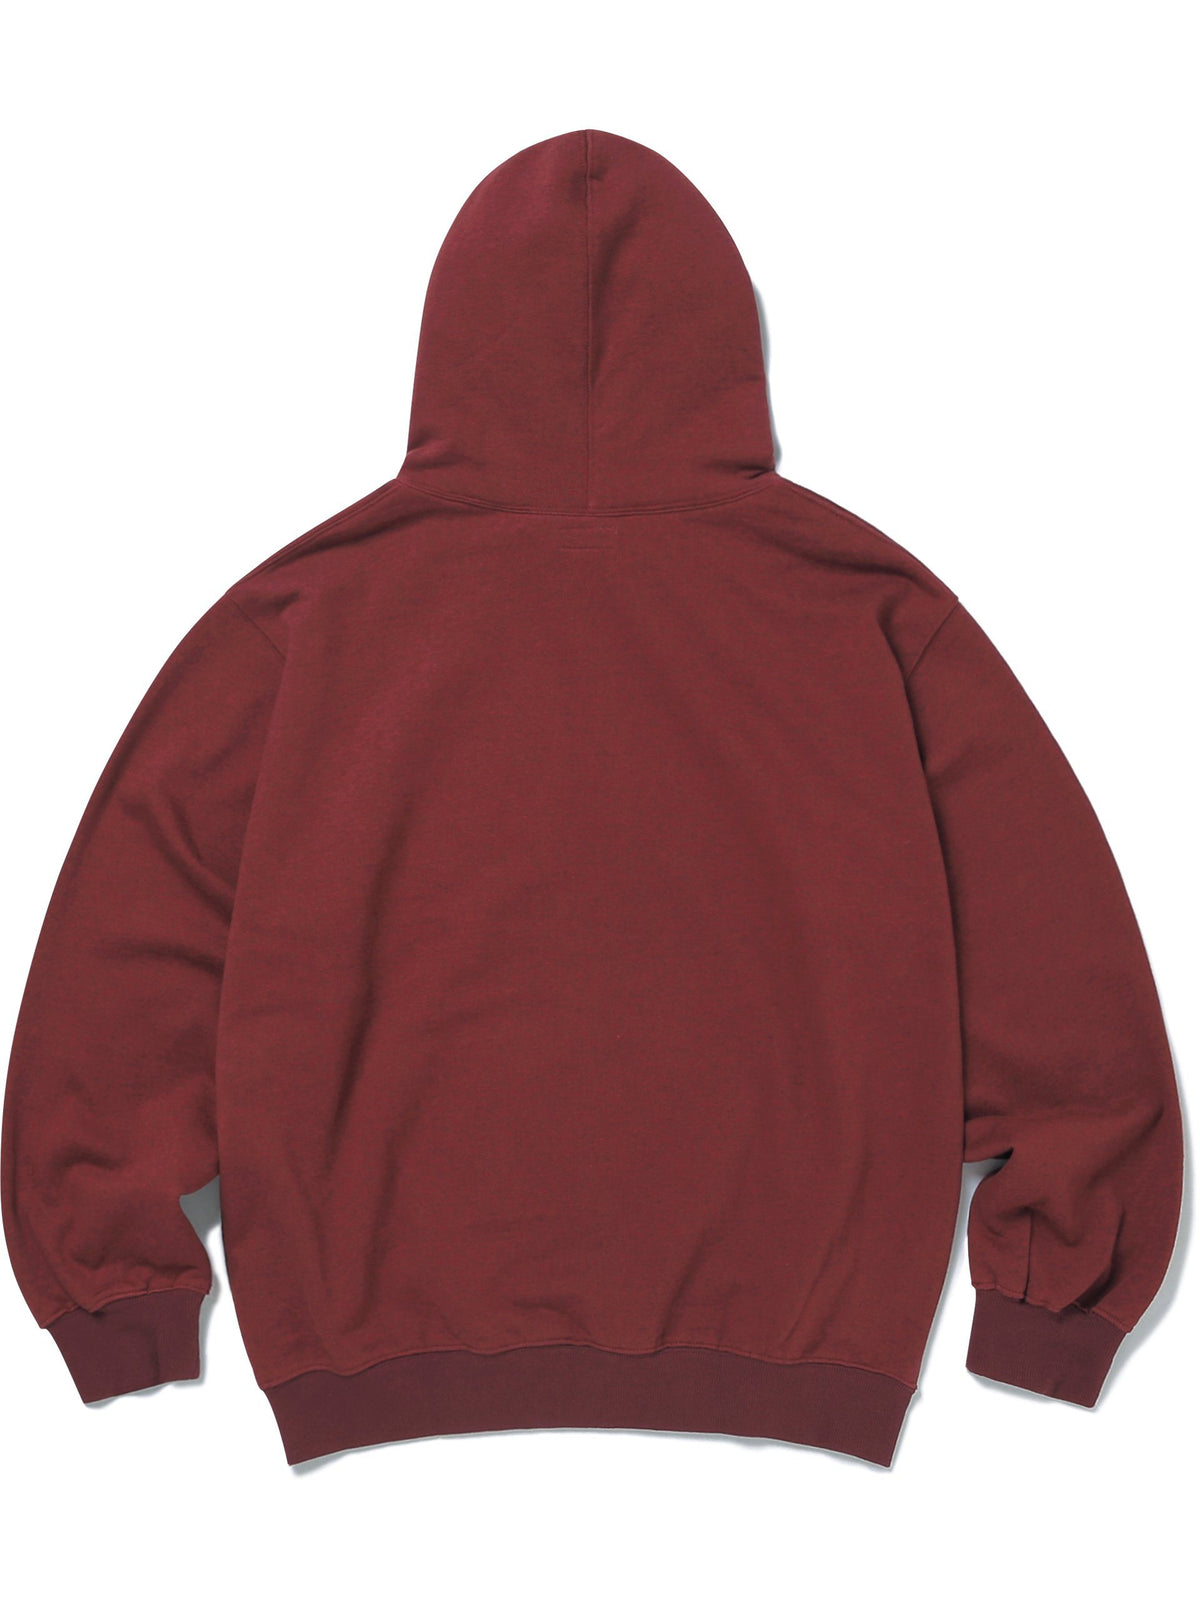 Champions Hooded Sweatshirt - thisisneverthat